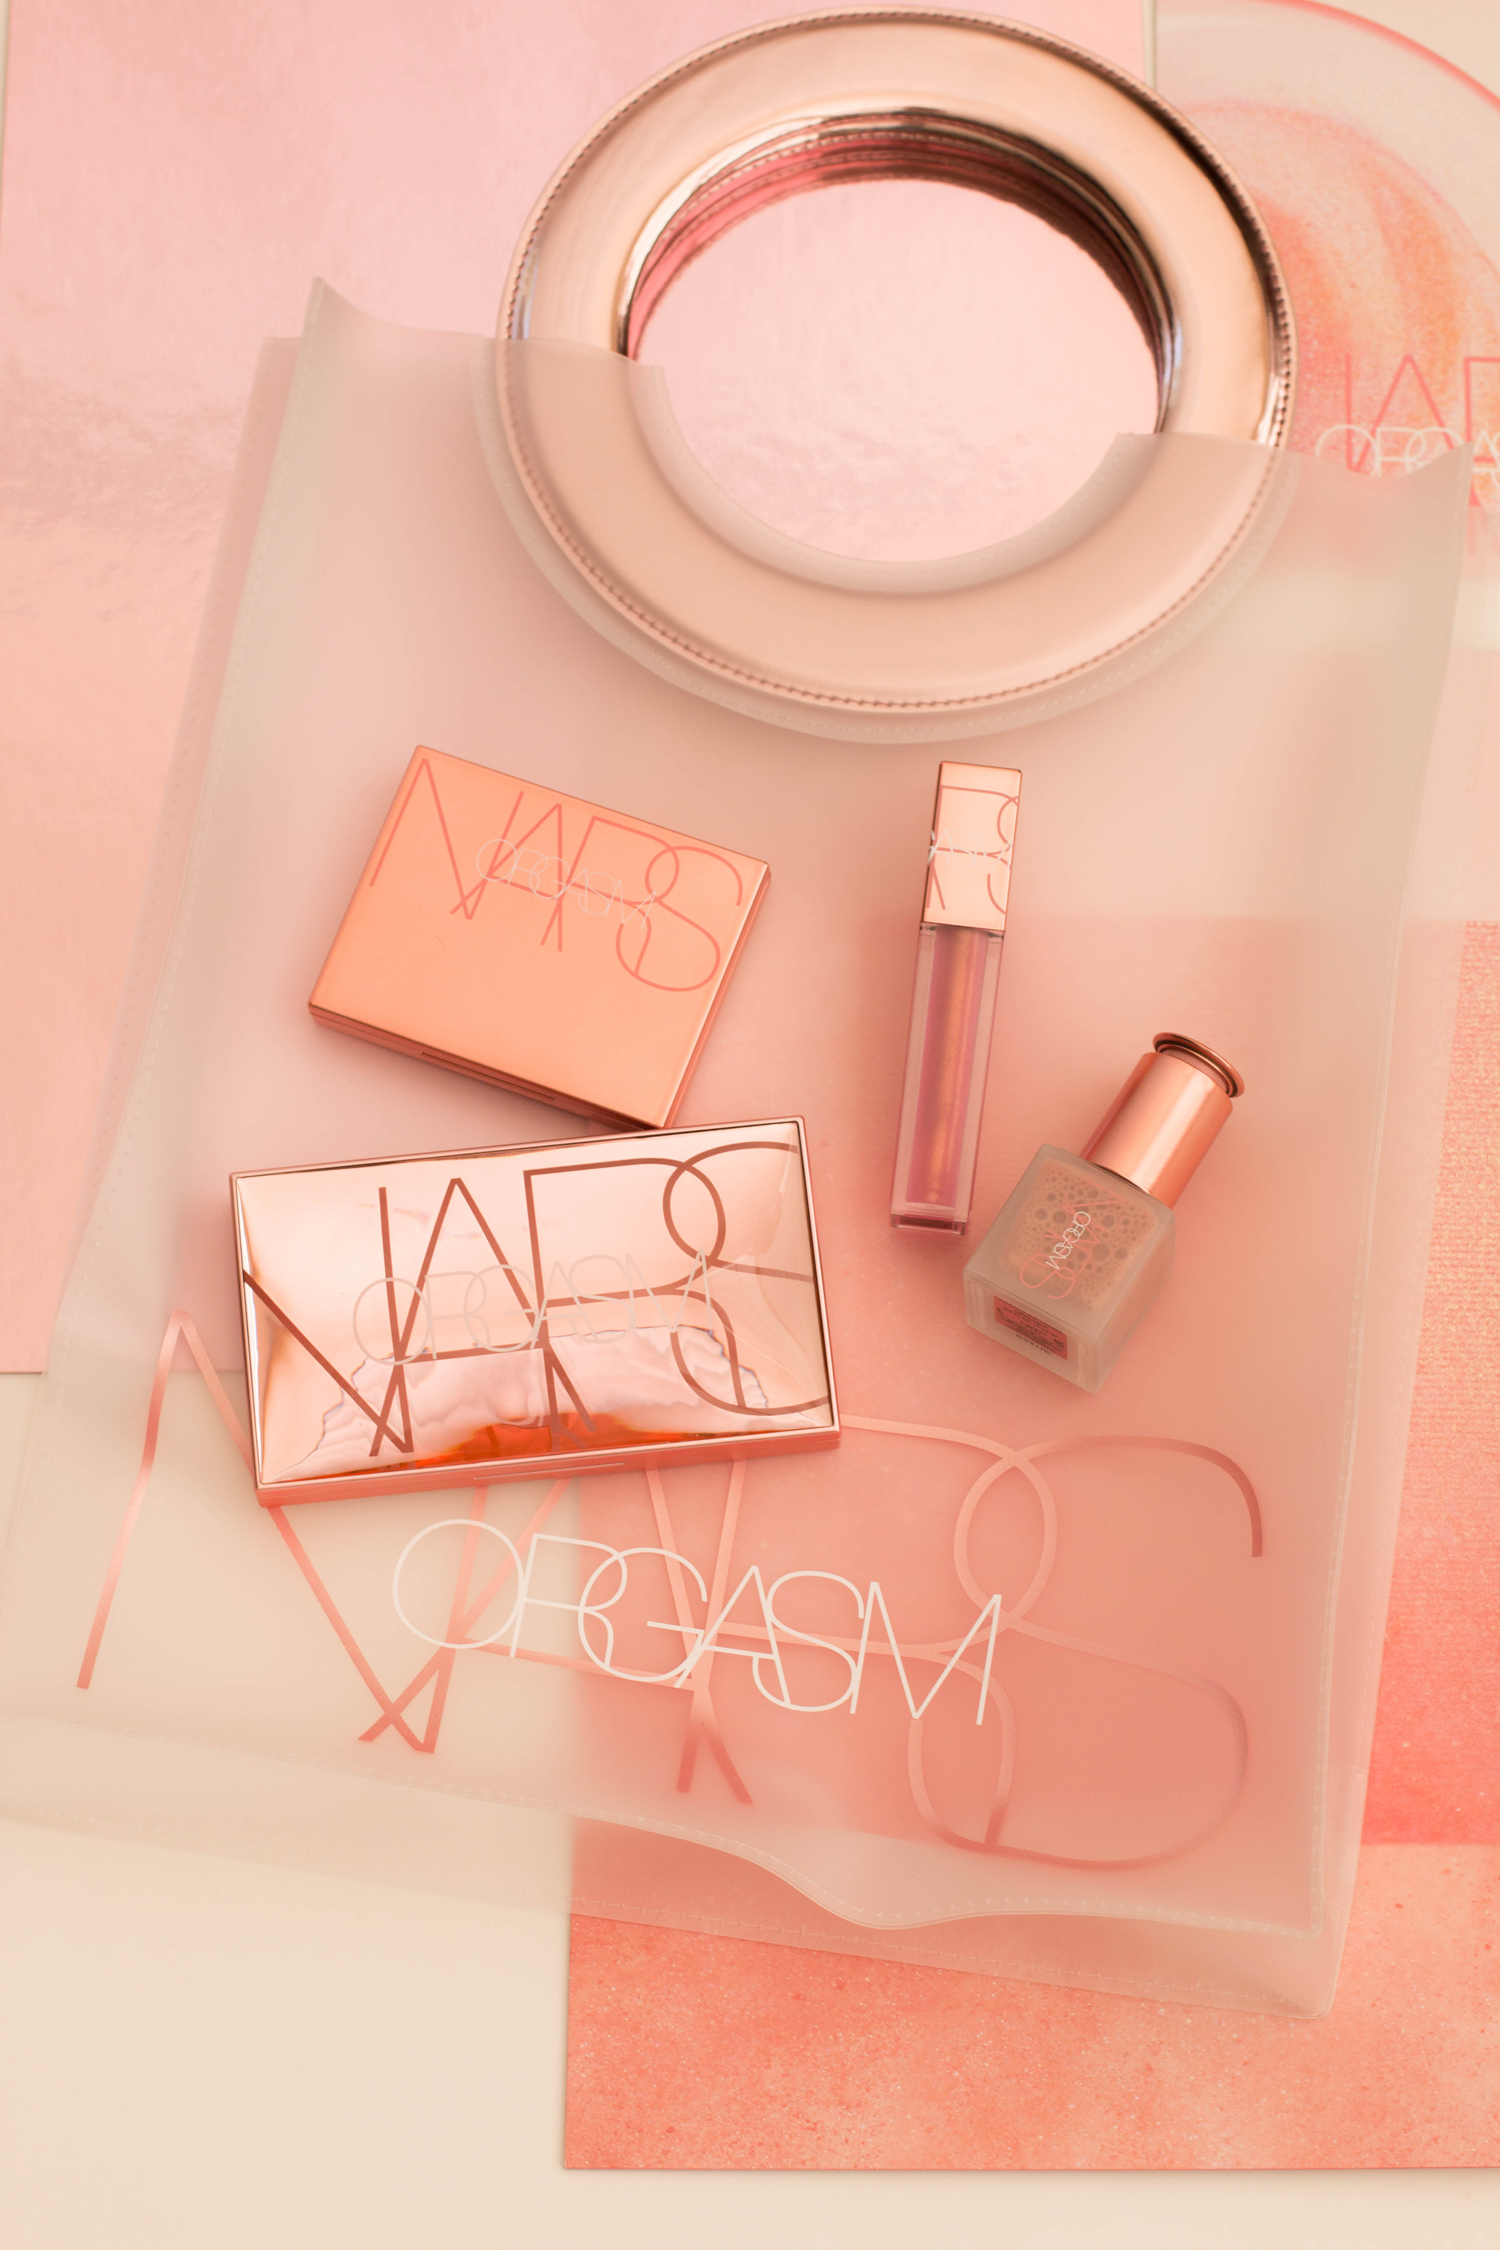 Nars Orgasm Collection Sephora Ulta Nordstrom Beauty Highlighter Blush Palette Lip Gloss Pink